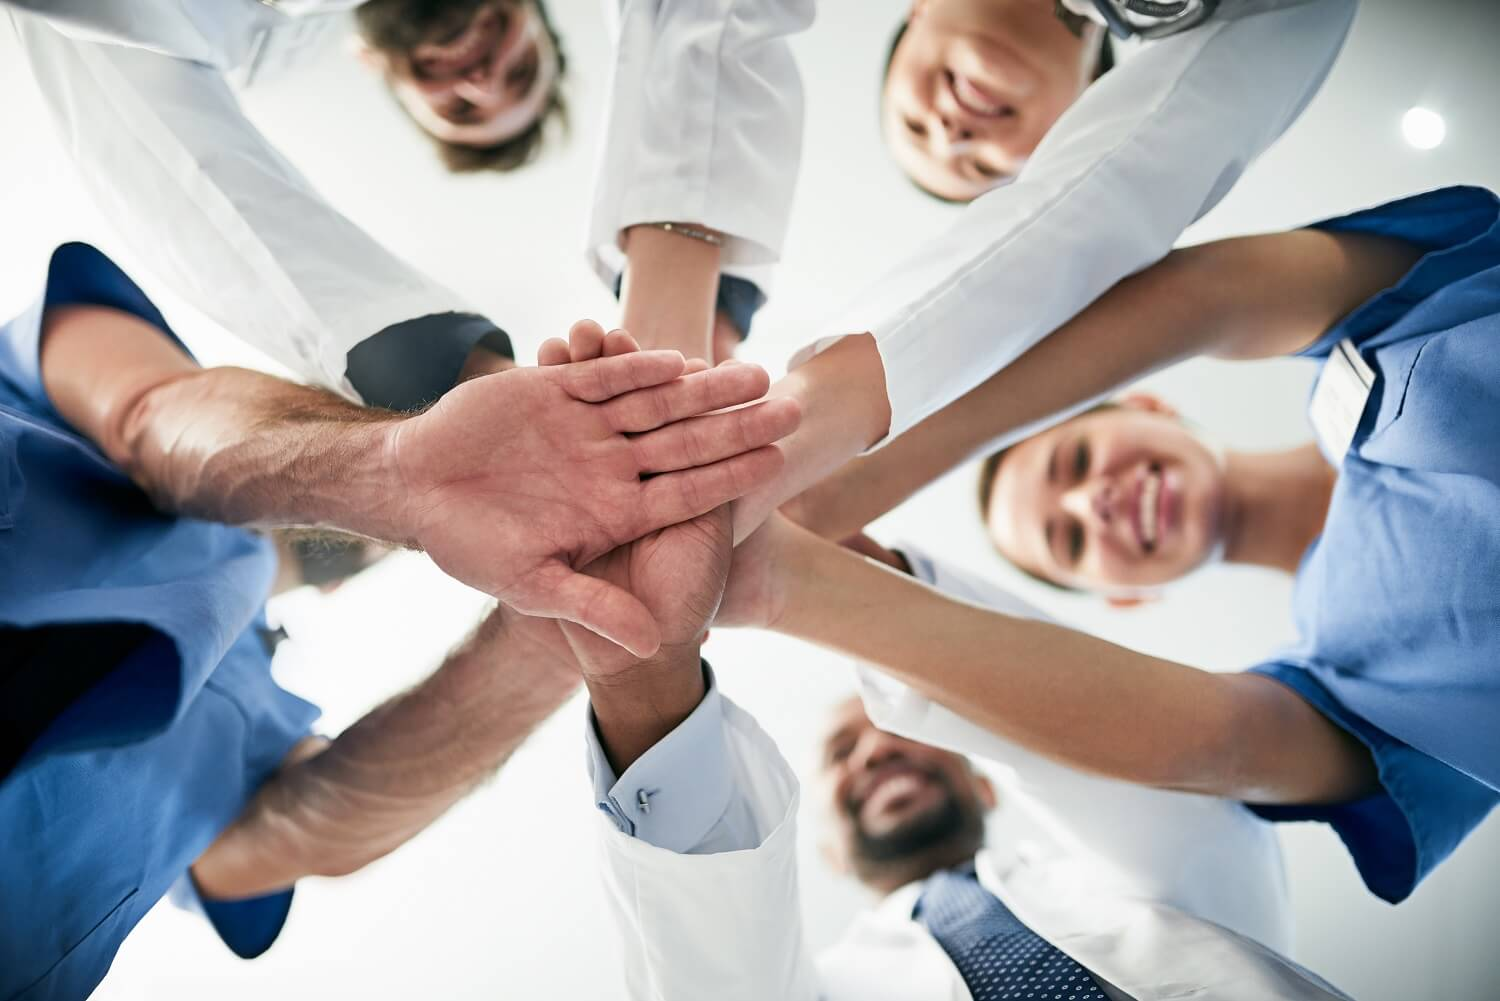 Teamwork, collaboration, doctors